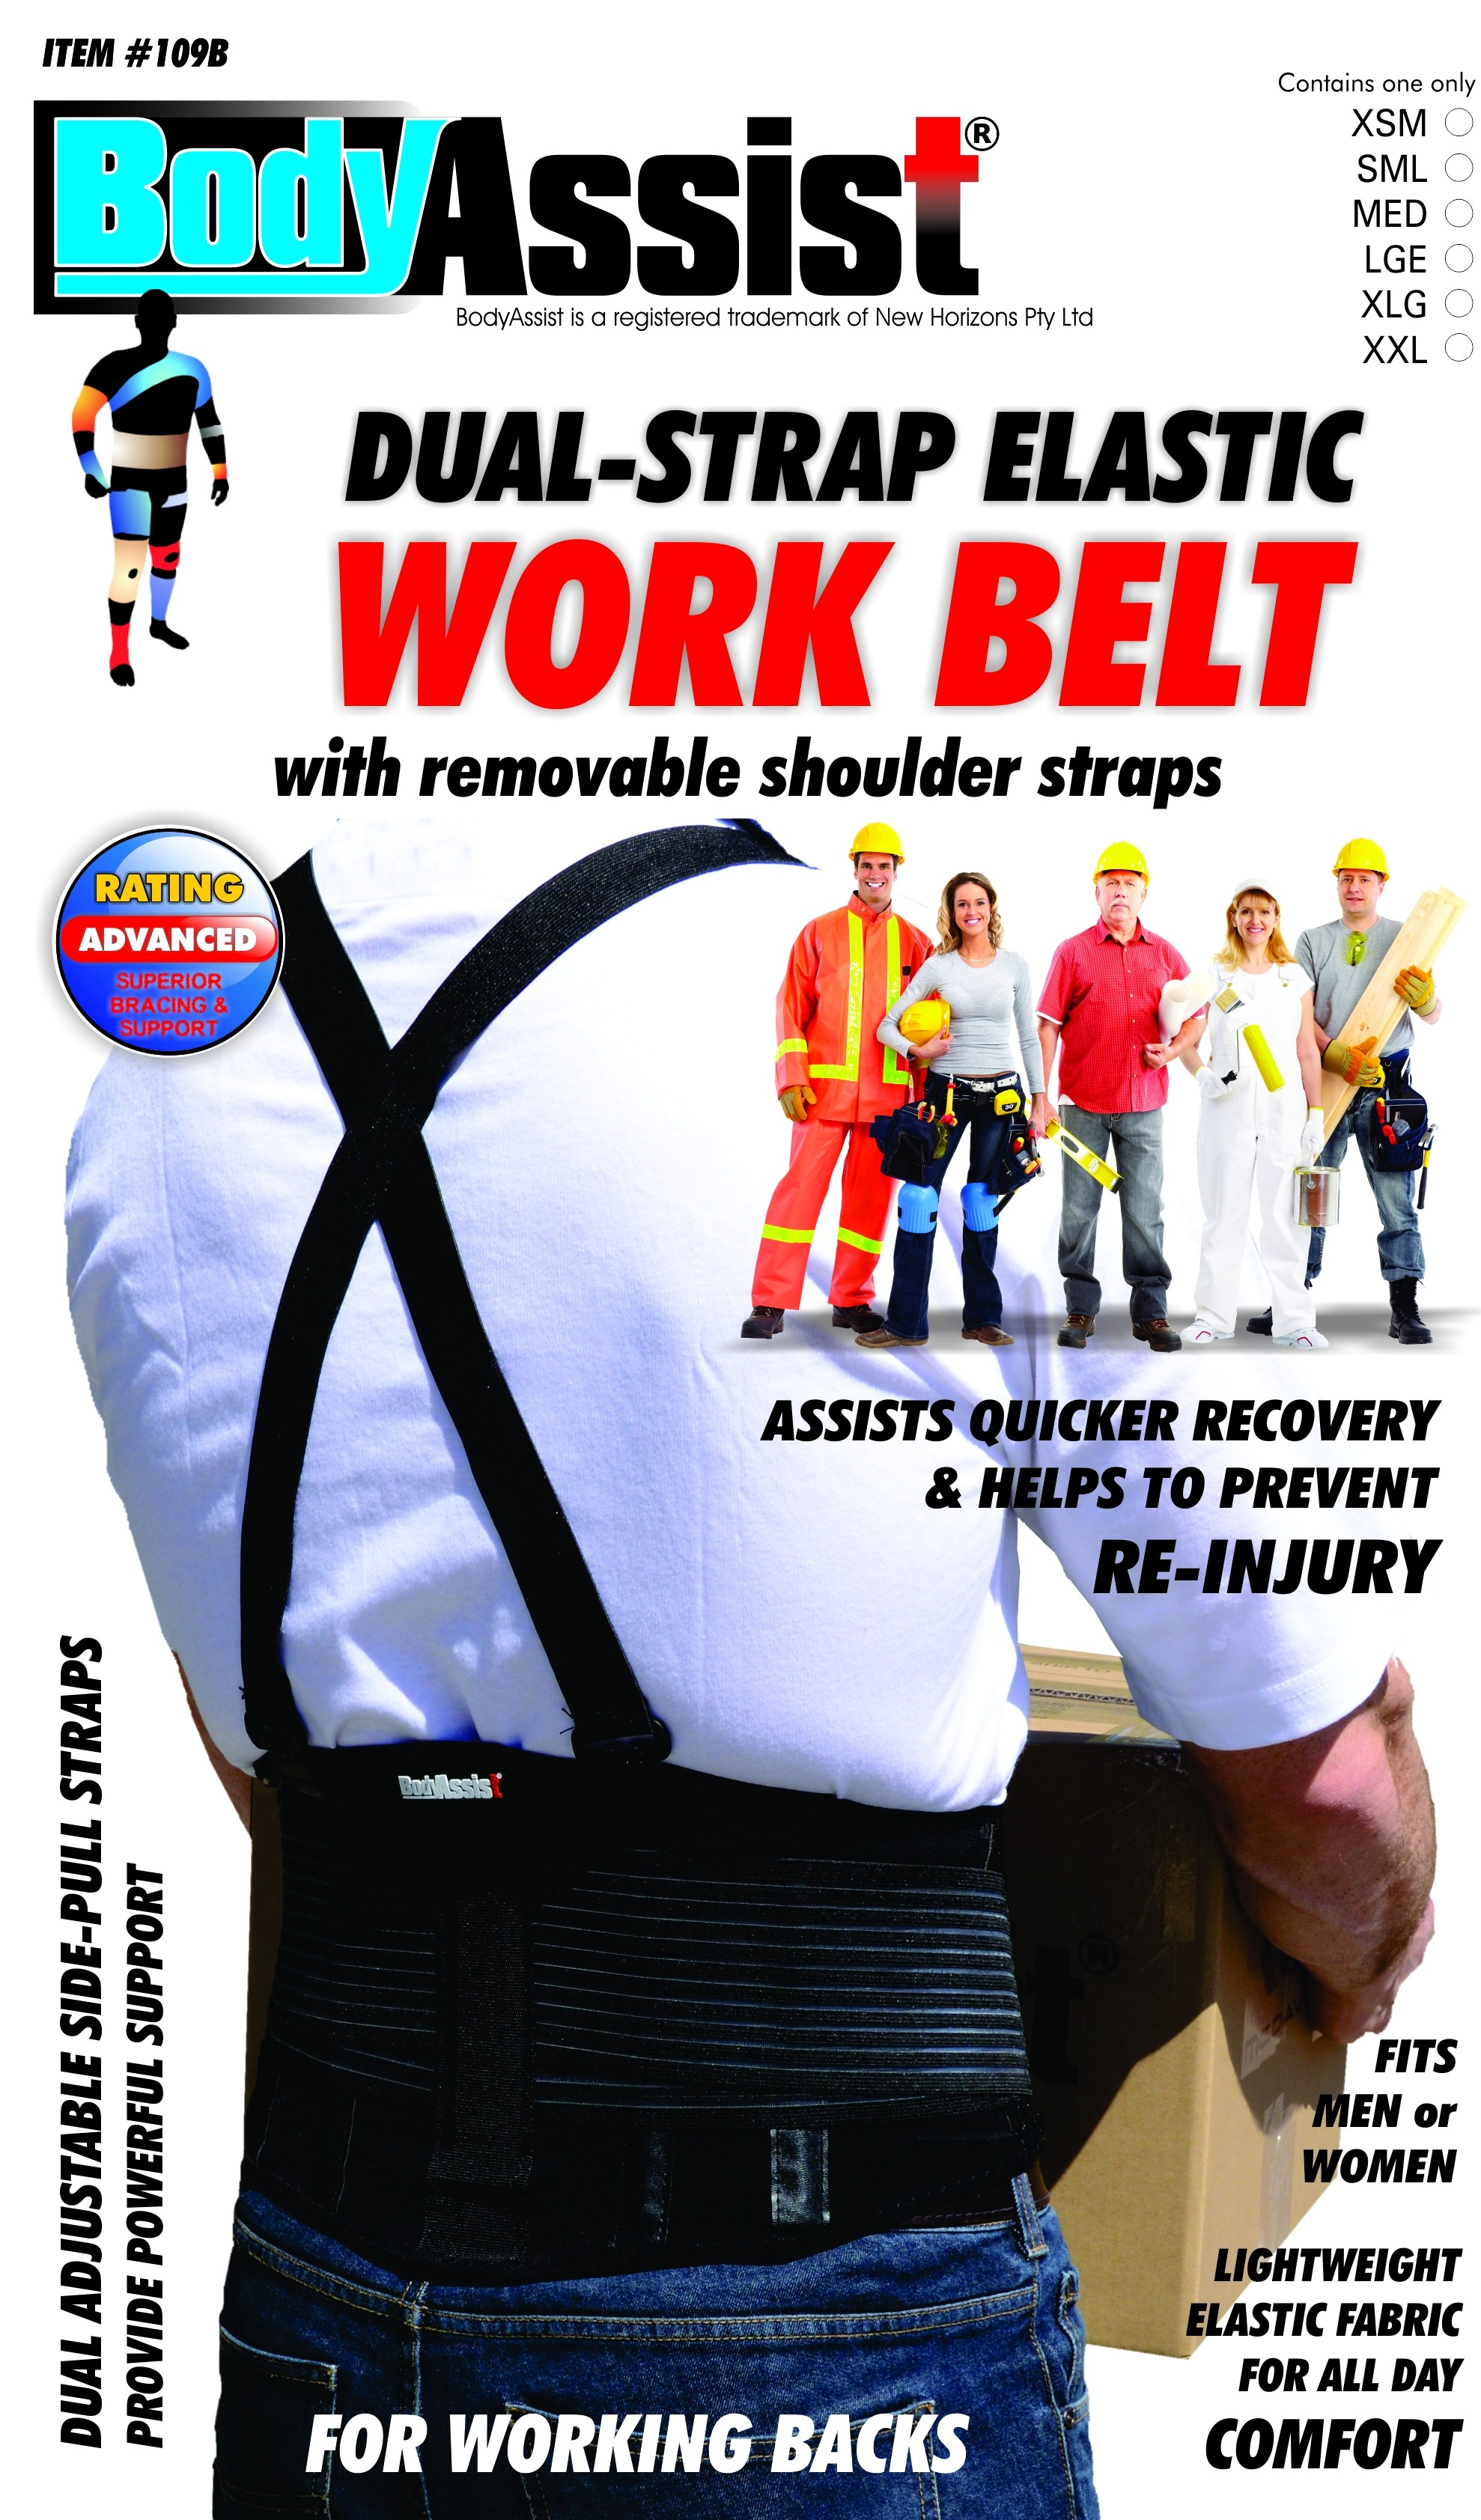 Back Support with Shoulder Straps